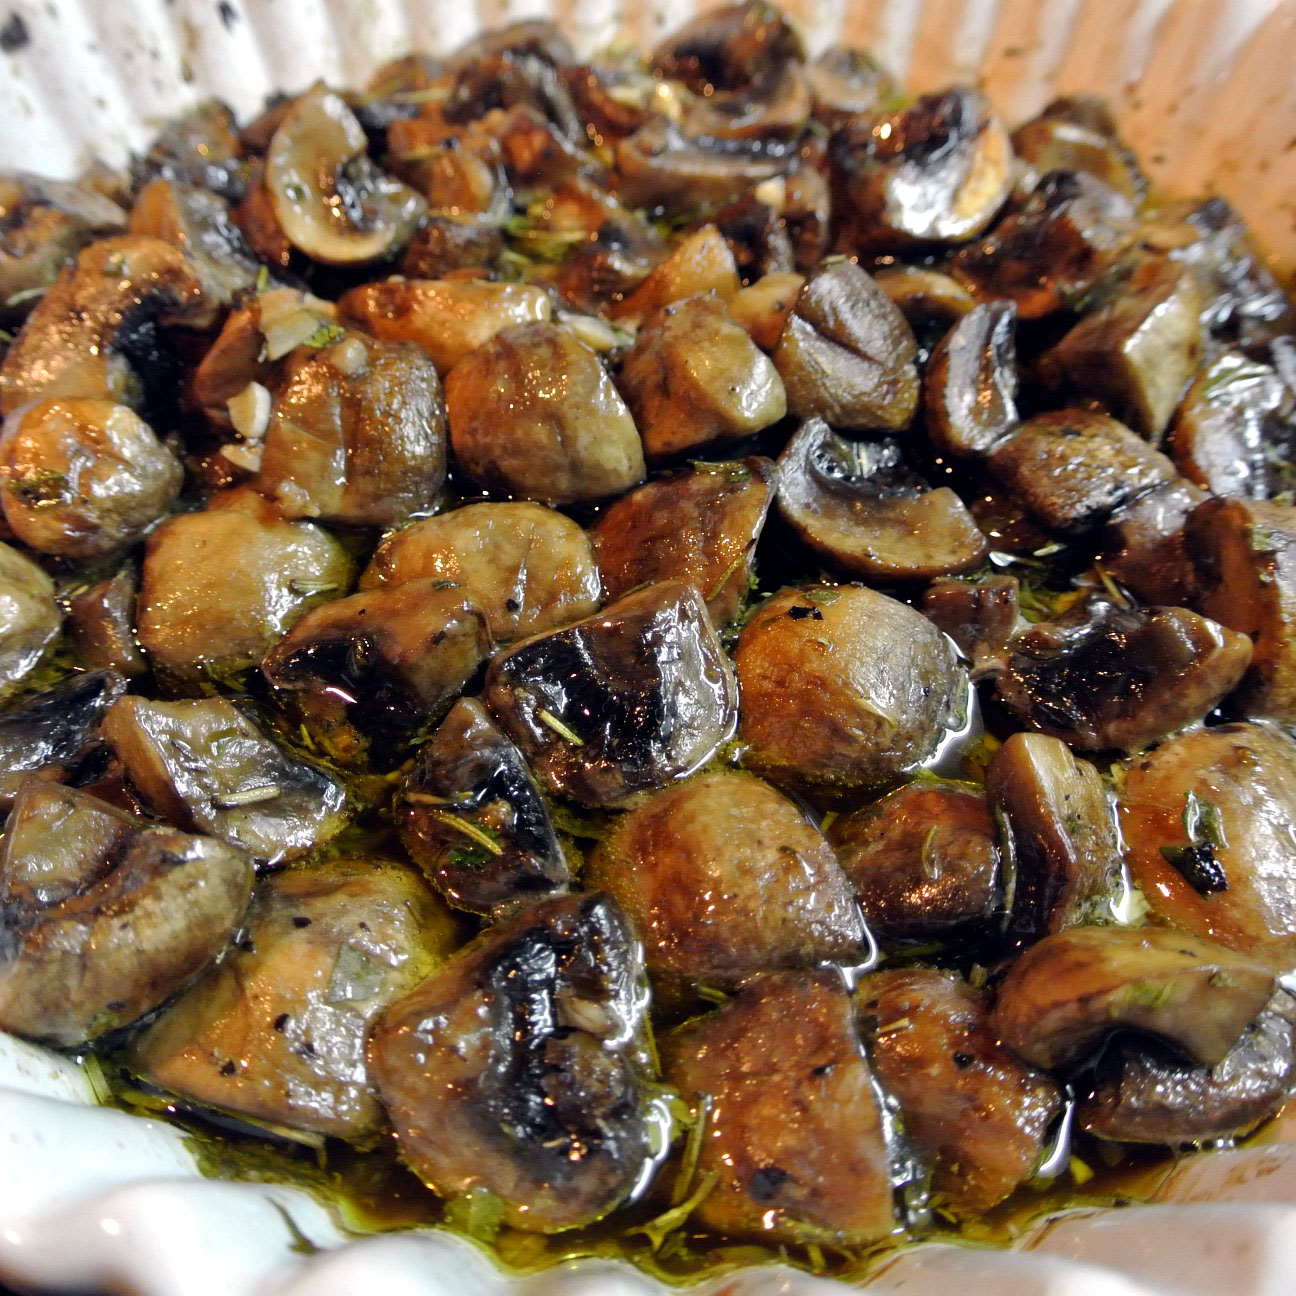 ... roasted mushrooms roasted mushrooms with rosemary and garlic balsamic